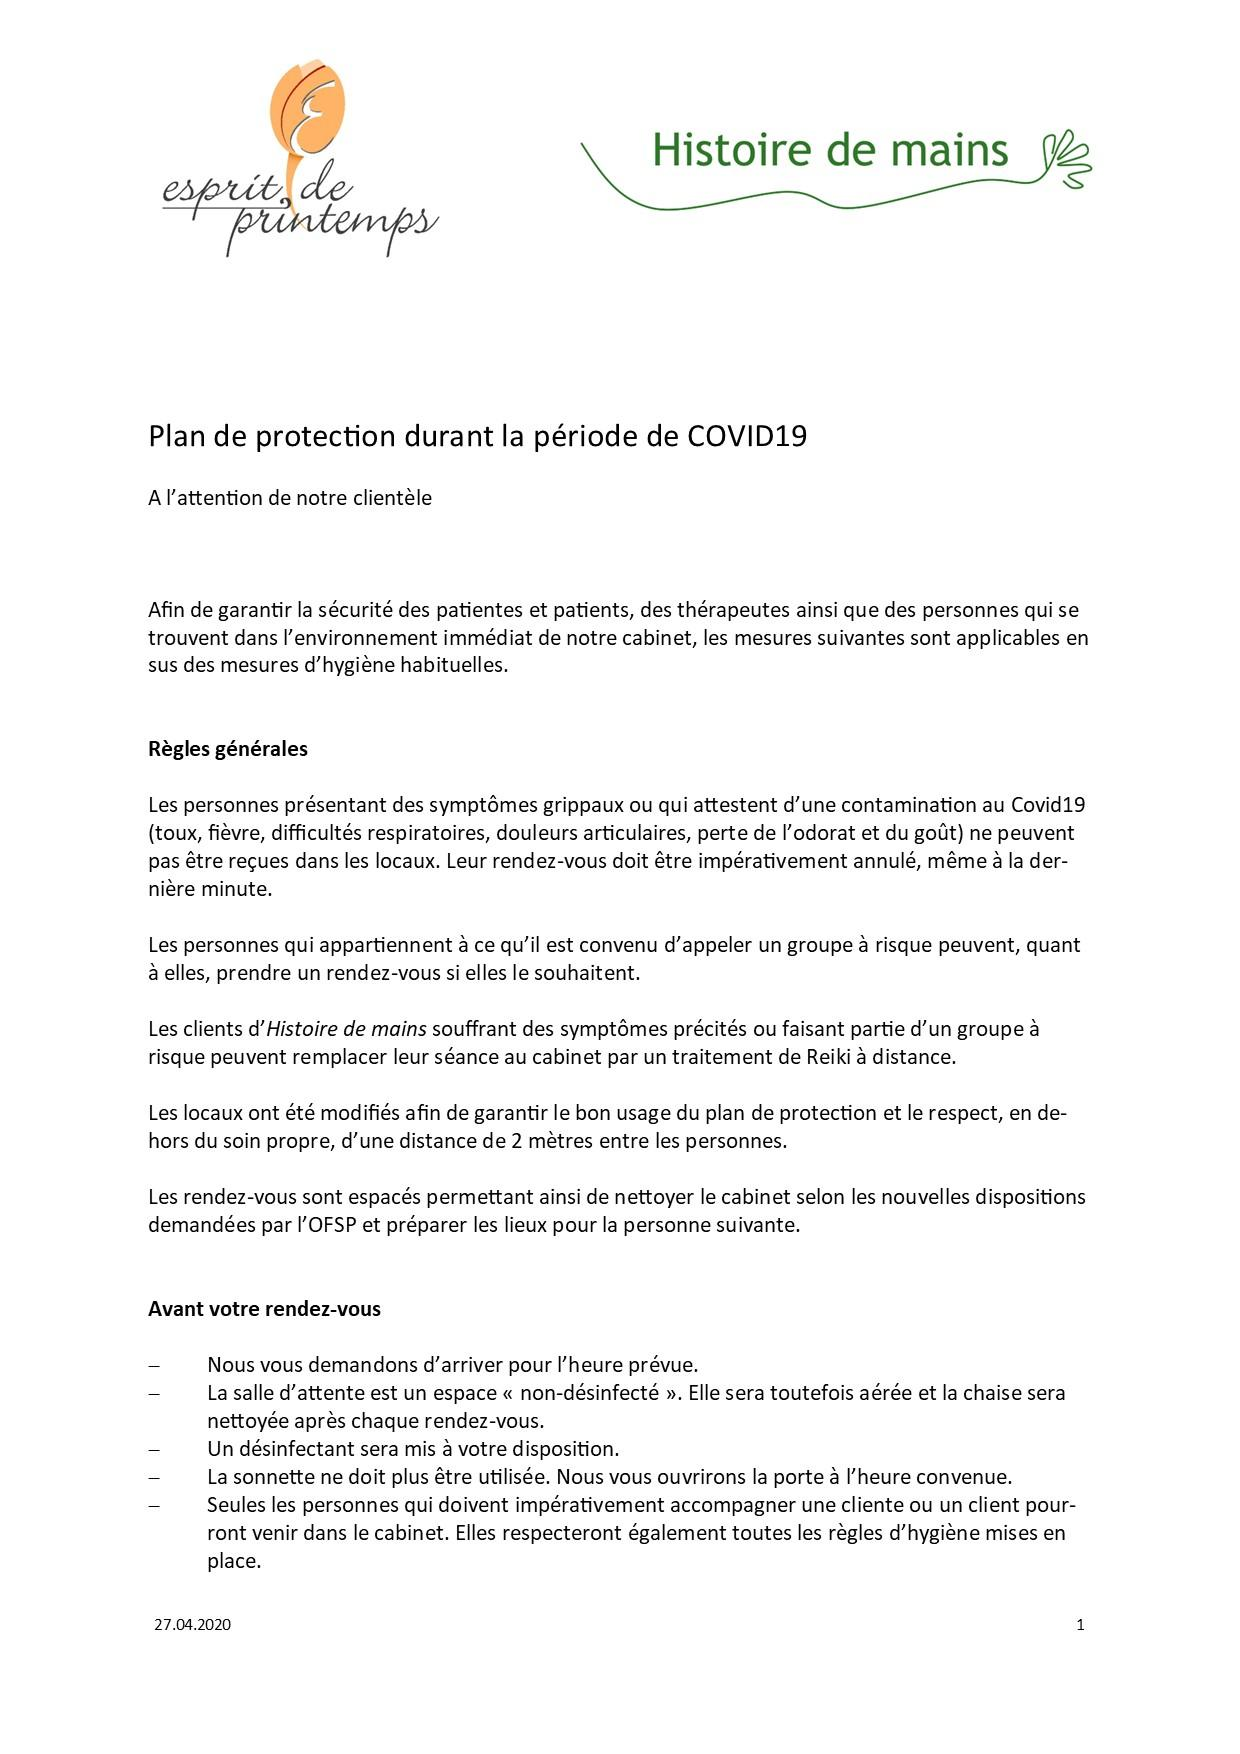 Plan de protection clientele 200426 page1